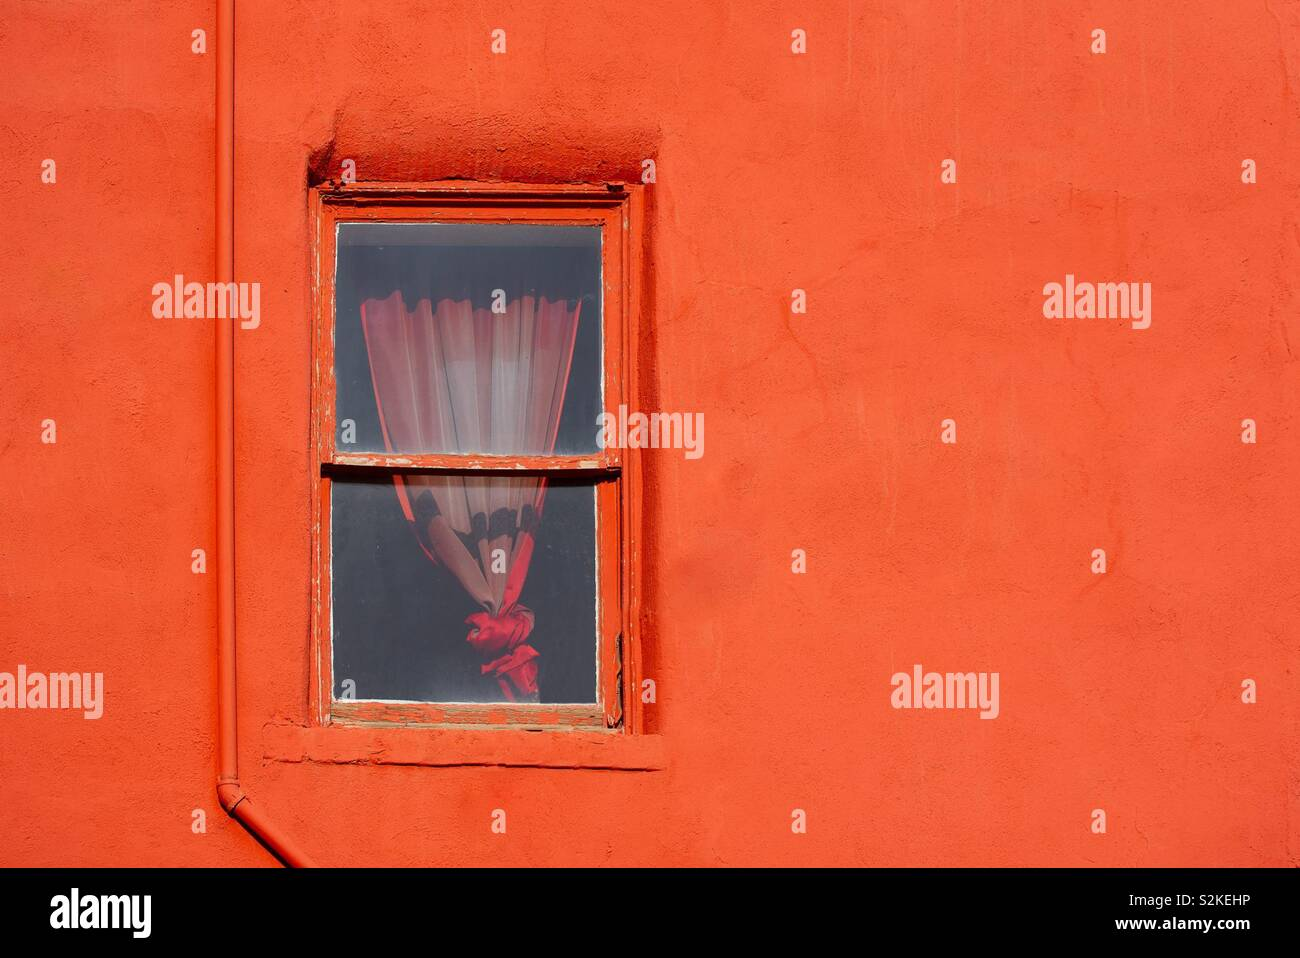 Rote Wand mit Fenster Stockfoto